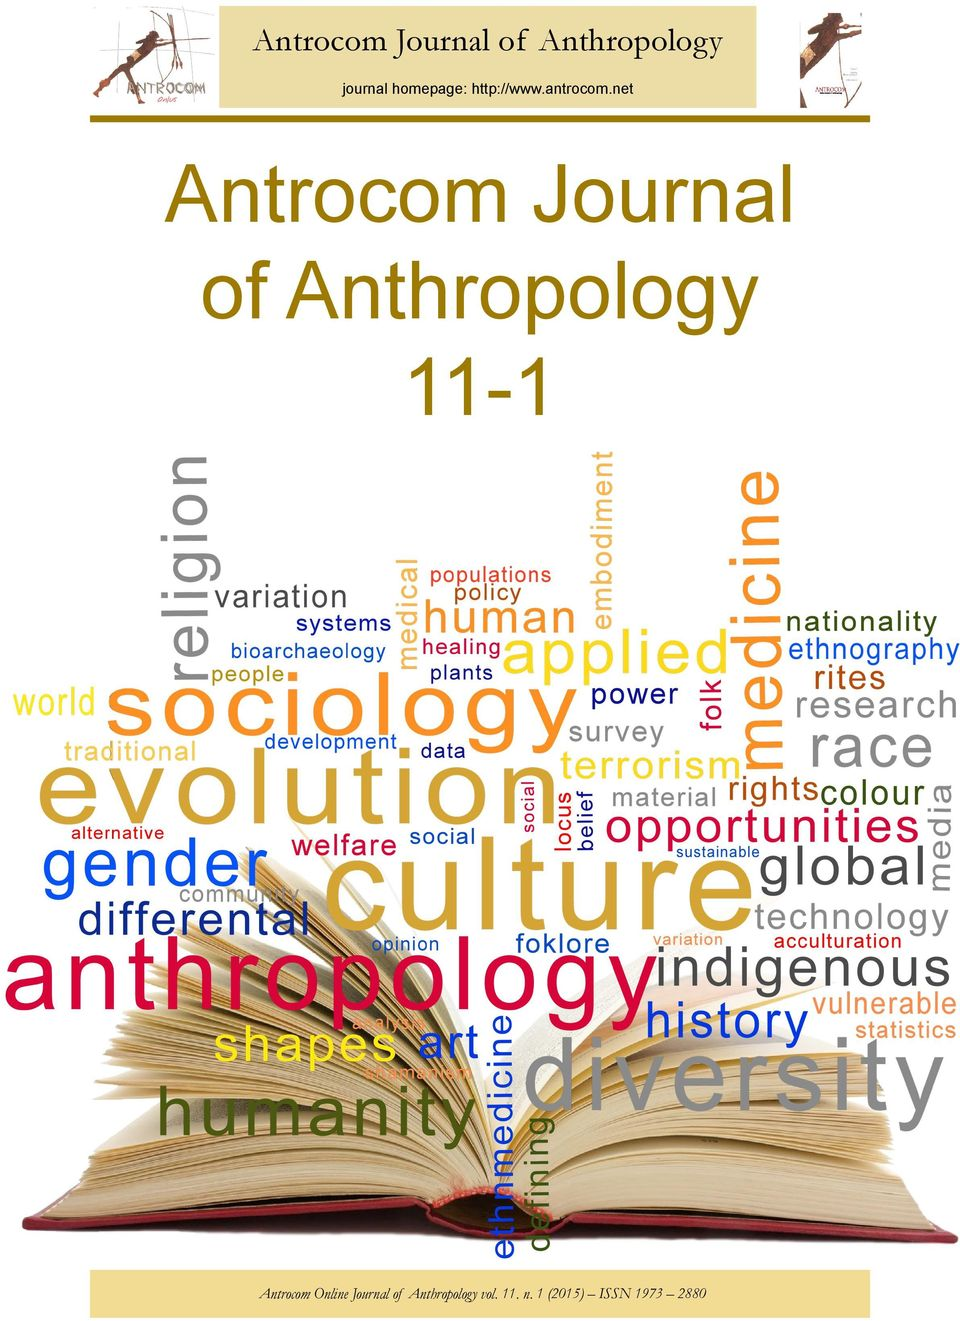 net Antrocom Journal of Anthropology 11-1